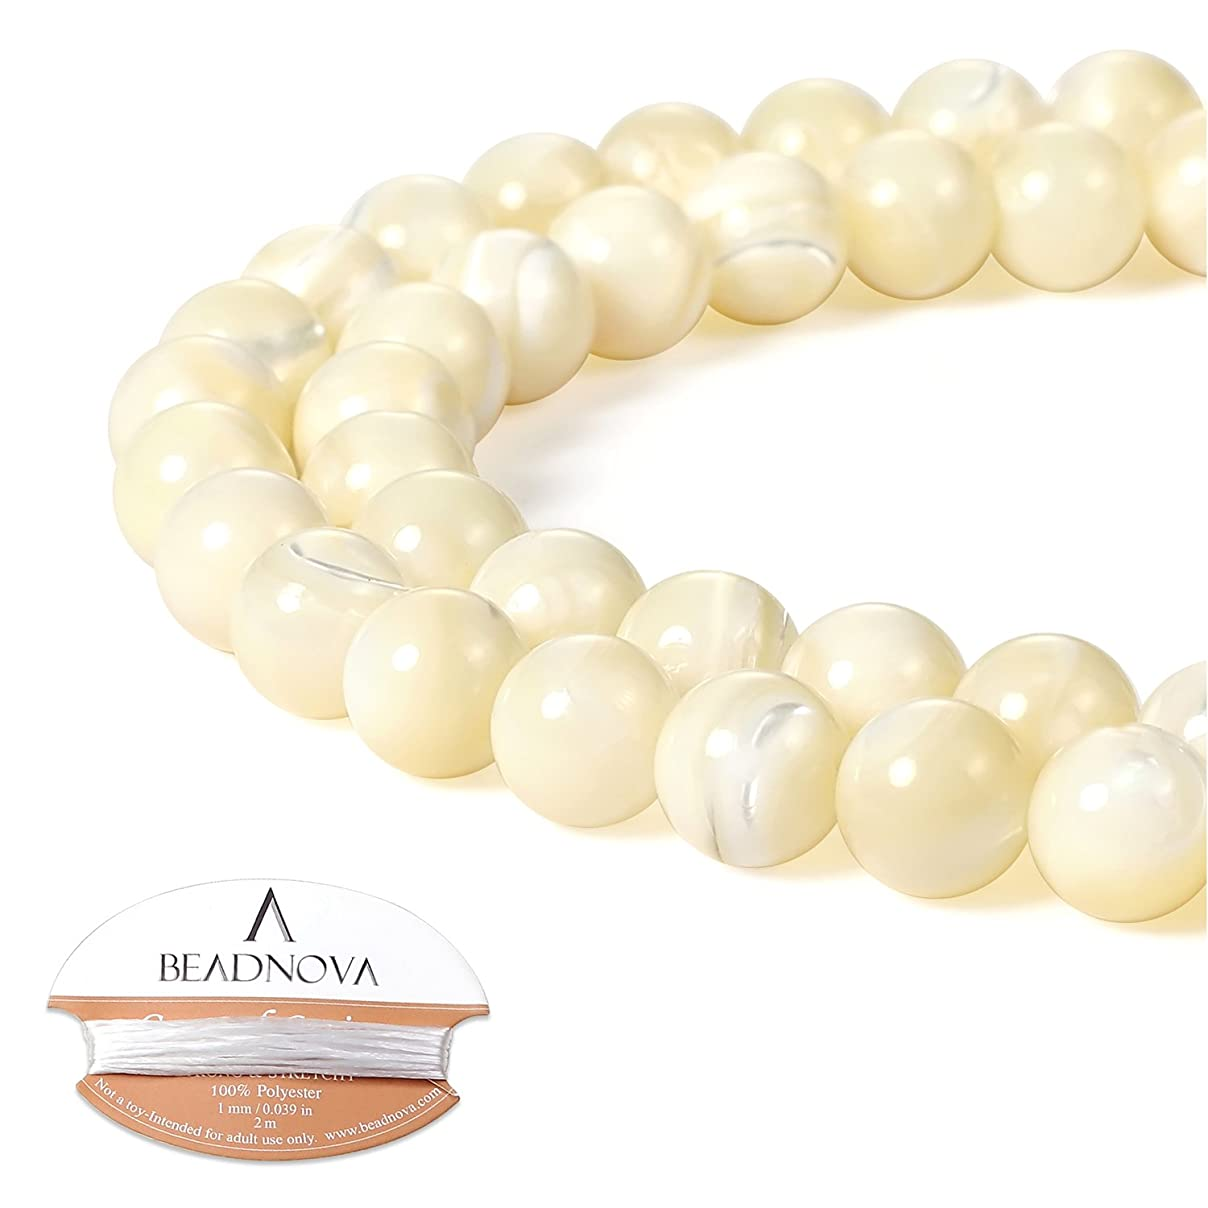 BEADNOVA Natural White Mother of Pearl Shell Beads Natural Crystal Beads Stone Gemstone Round Loose Energy Healing Beads with Free Crystal Stretch Cord for Jewelry Making (8mm, 45-48pcs) enfrs922415